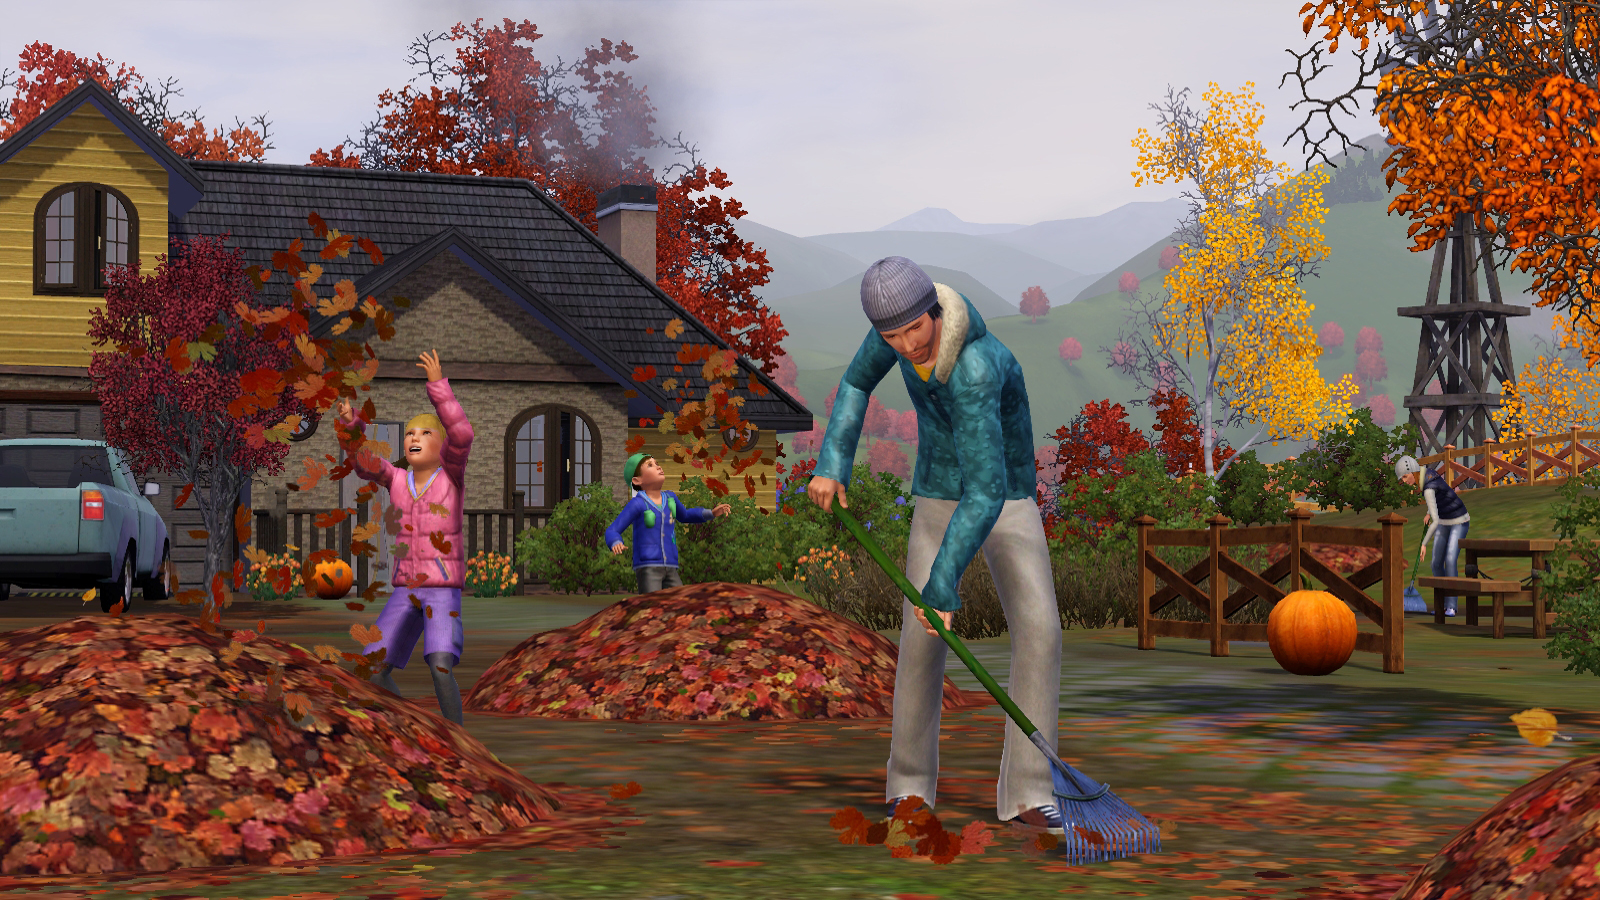 Sims 3 Seasons Outfits Winter in The Sims 3 Seasons